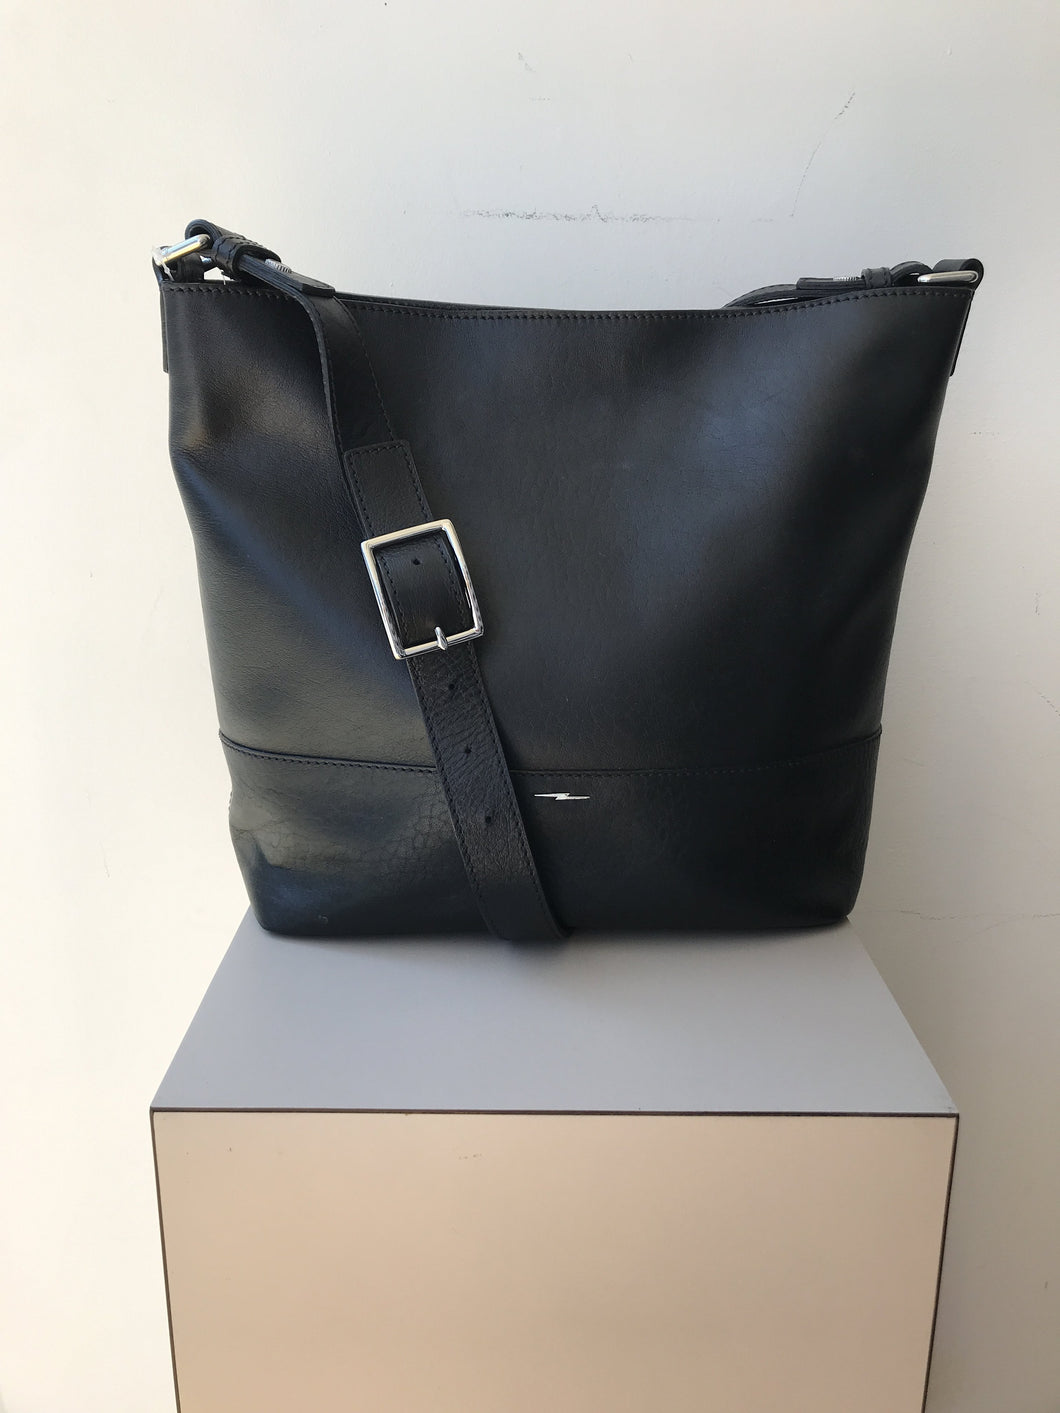 Shinola black leather shoulder/crossbody bag - My Girlfriend's Wardrobe York Pa